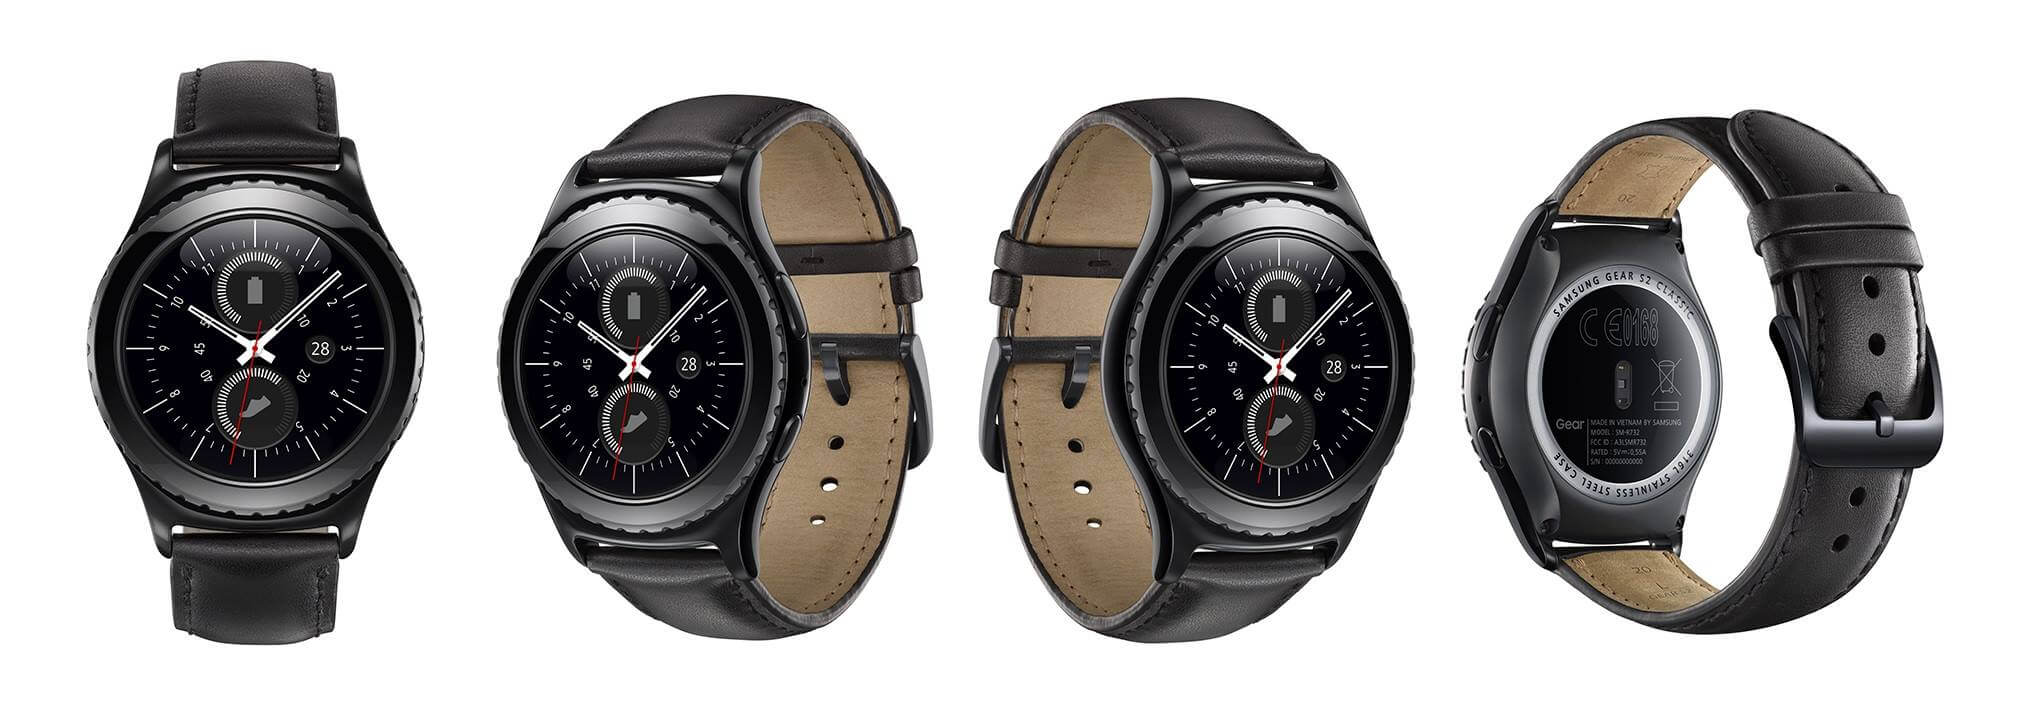 Samsung-Gear-S2-Classic-